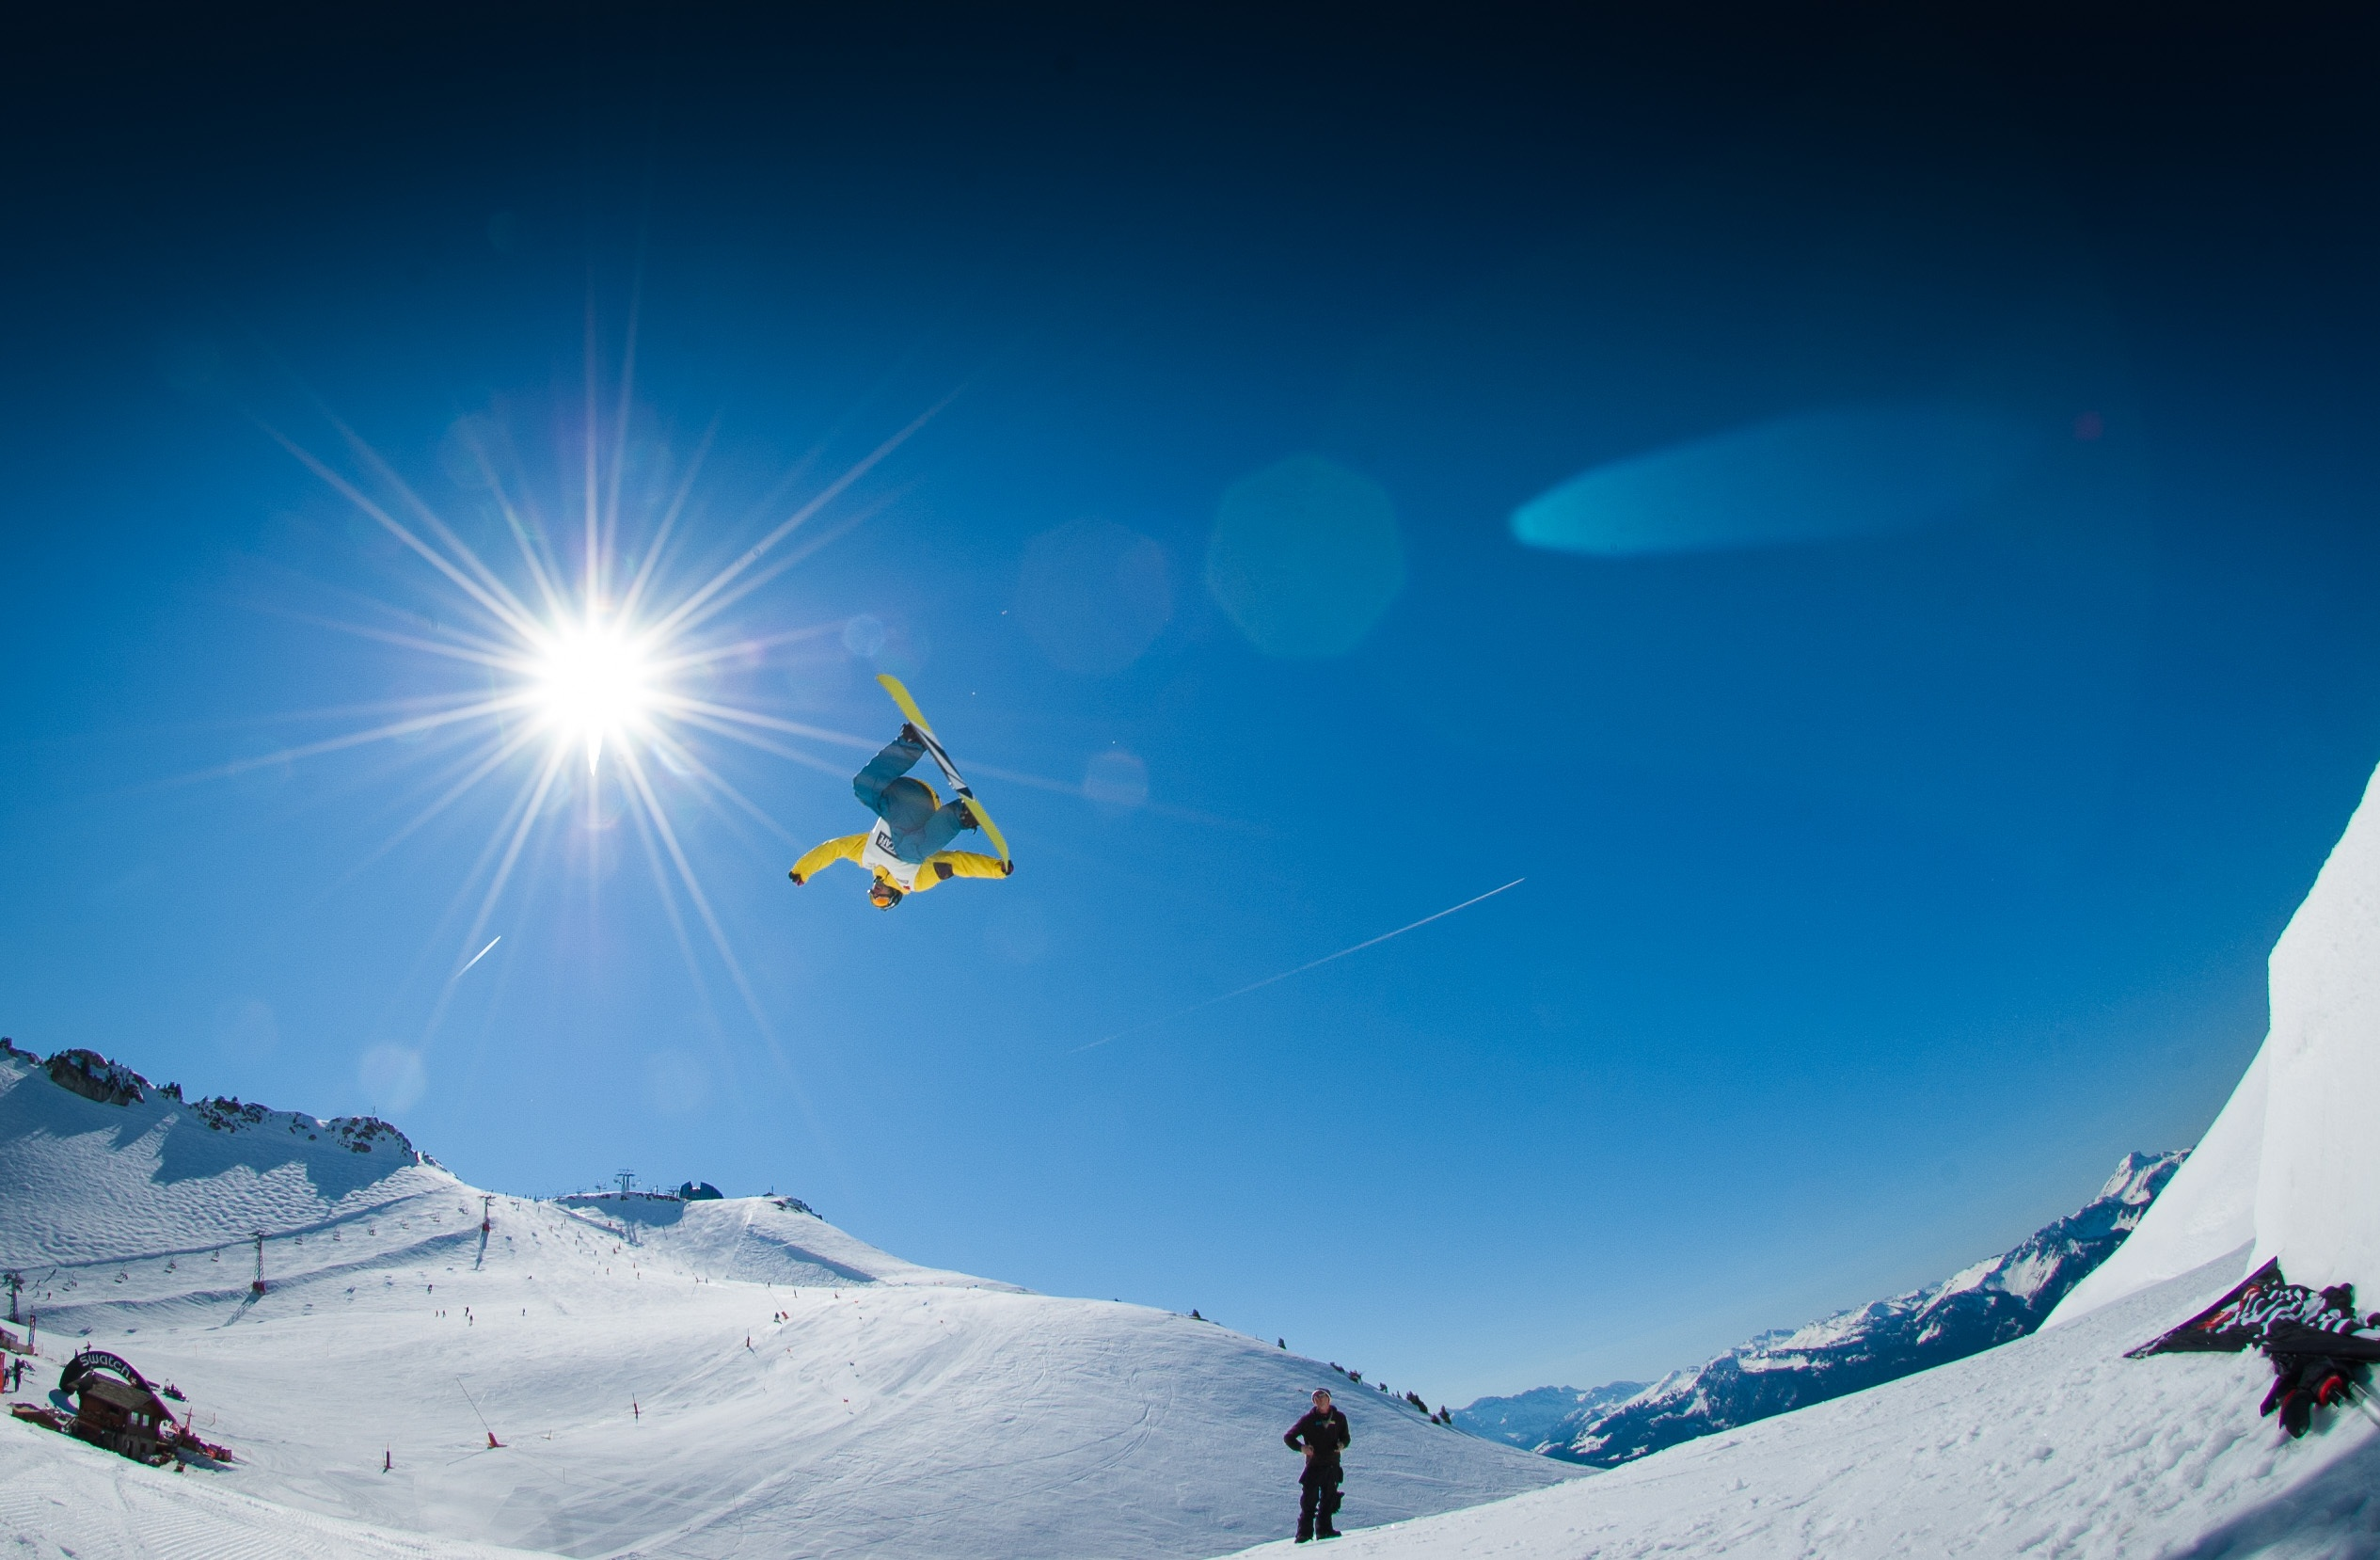 107651 download wallpaper Sports, Snowboarding, Snowboarder, Snow, Slope, Mountains screensavers and pictures for free